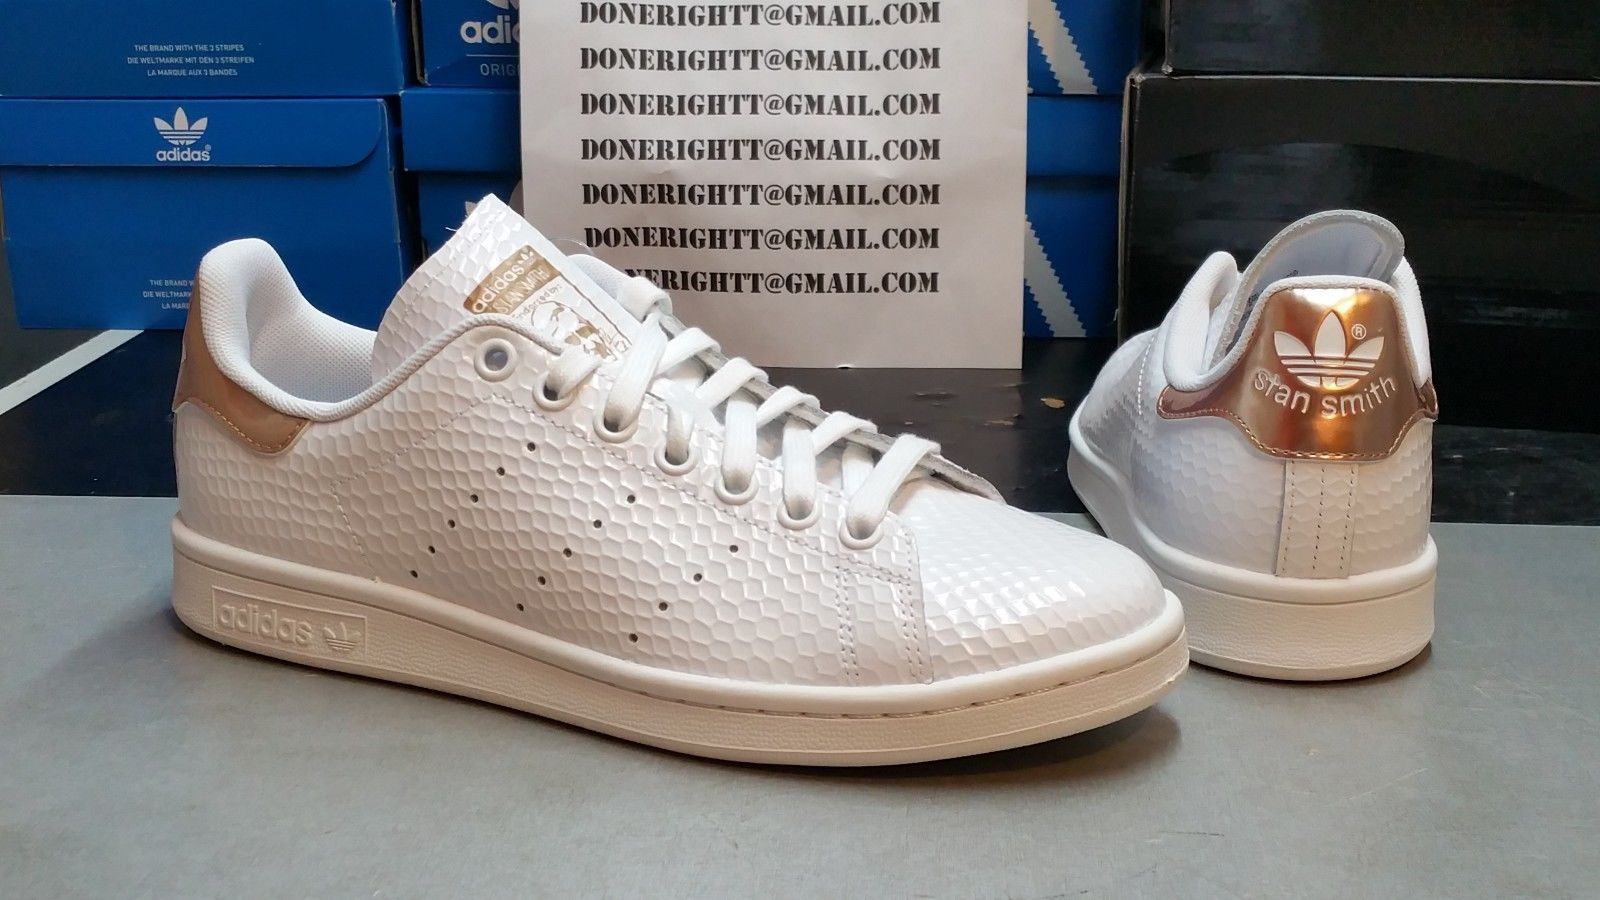 0cbdc69b27b Womens Adidas Stan Smith Copper White Kettle Snakeskin Metallic Rose Gold  Yeezy